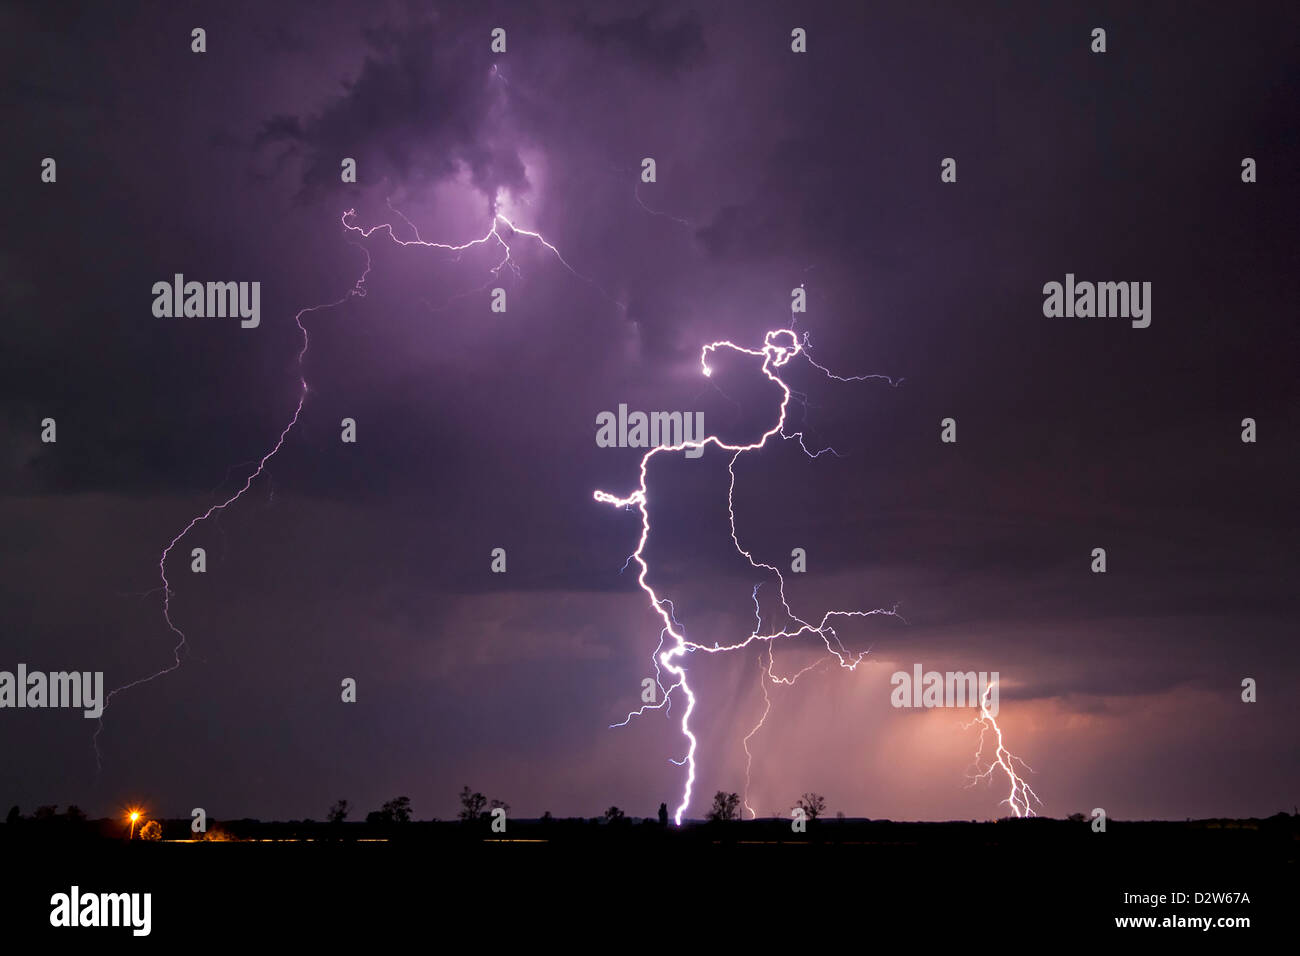 Lightning bolts lighting up the sky over a rural landscape - Stock Image